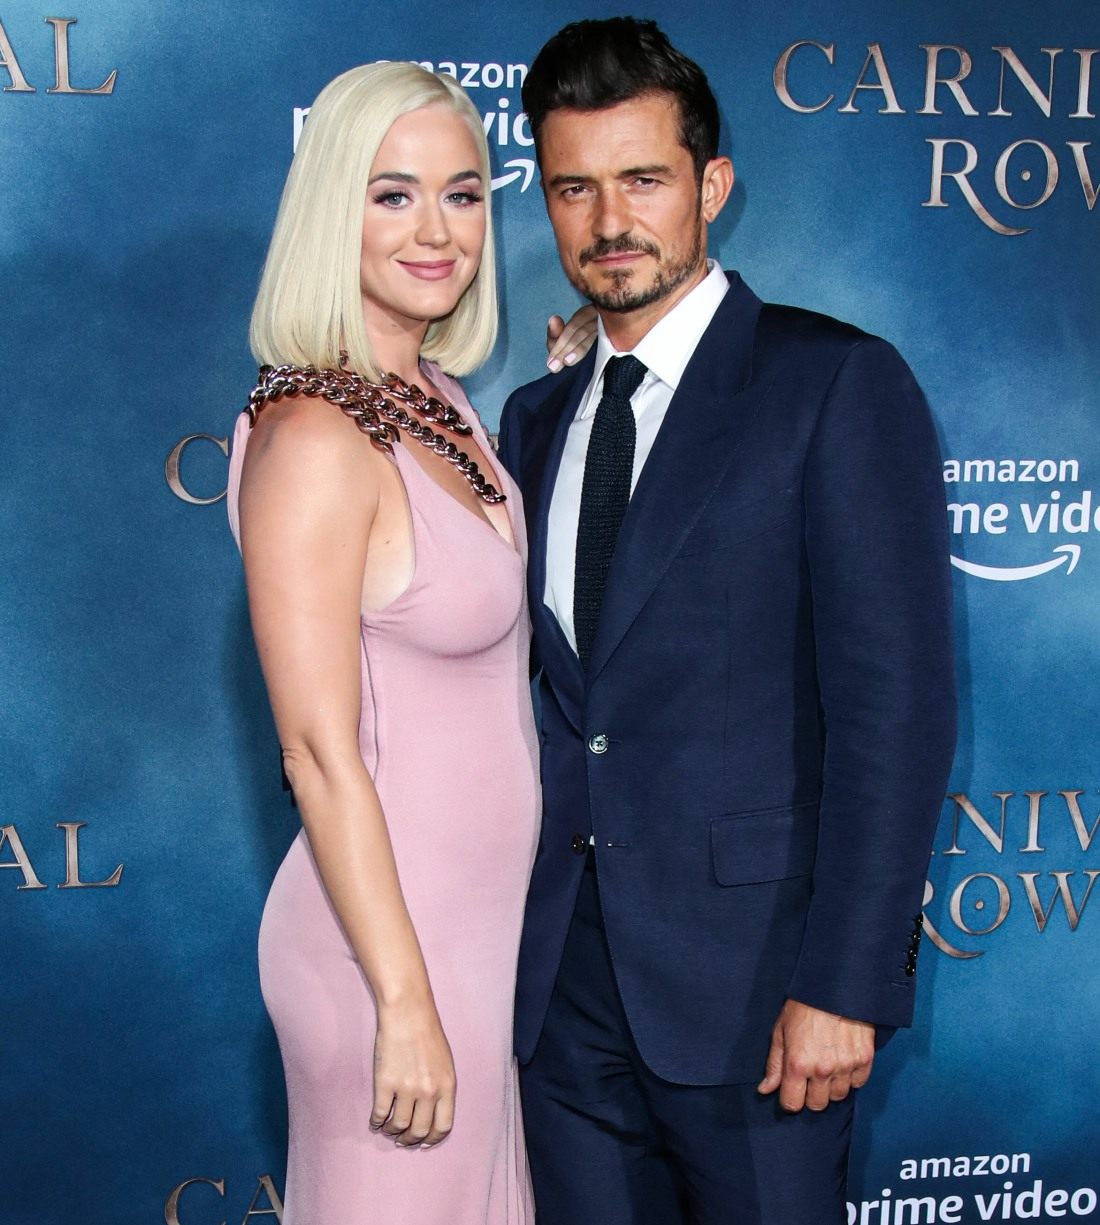 (FILE) Katy Perry Announces She's Expecting a Baby Girl with Orlando Bloom. Katy Perry announced on...